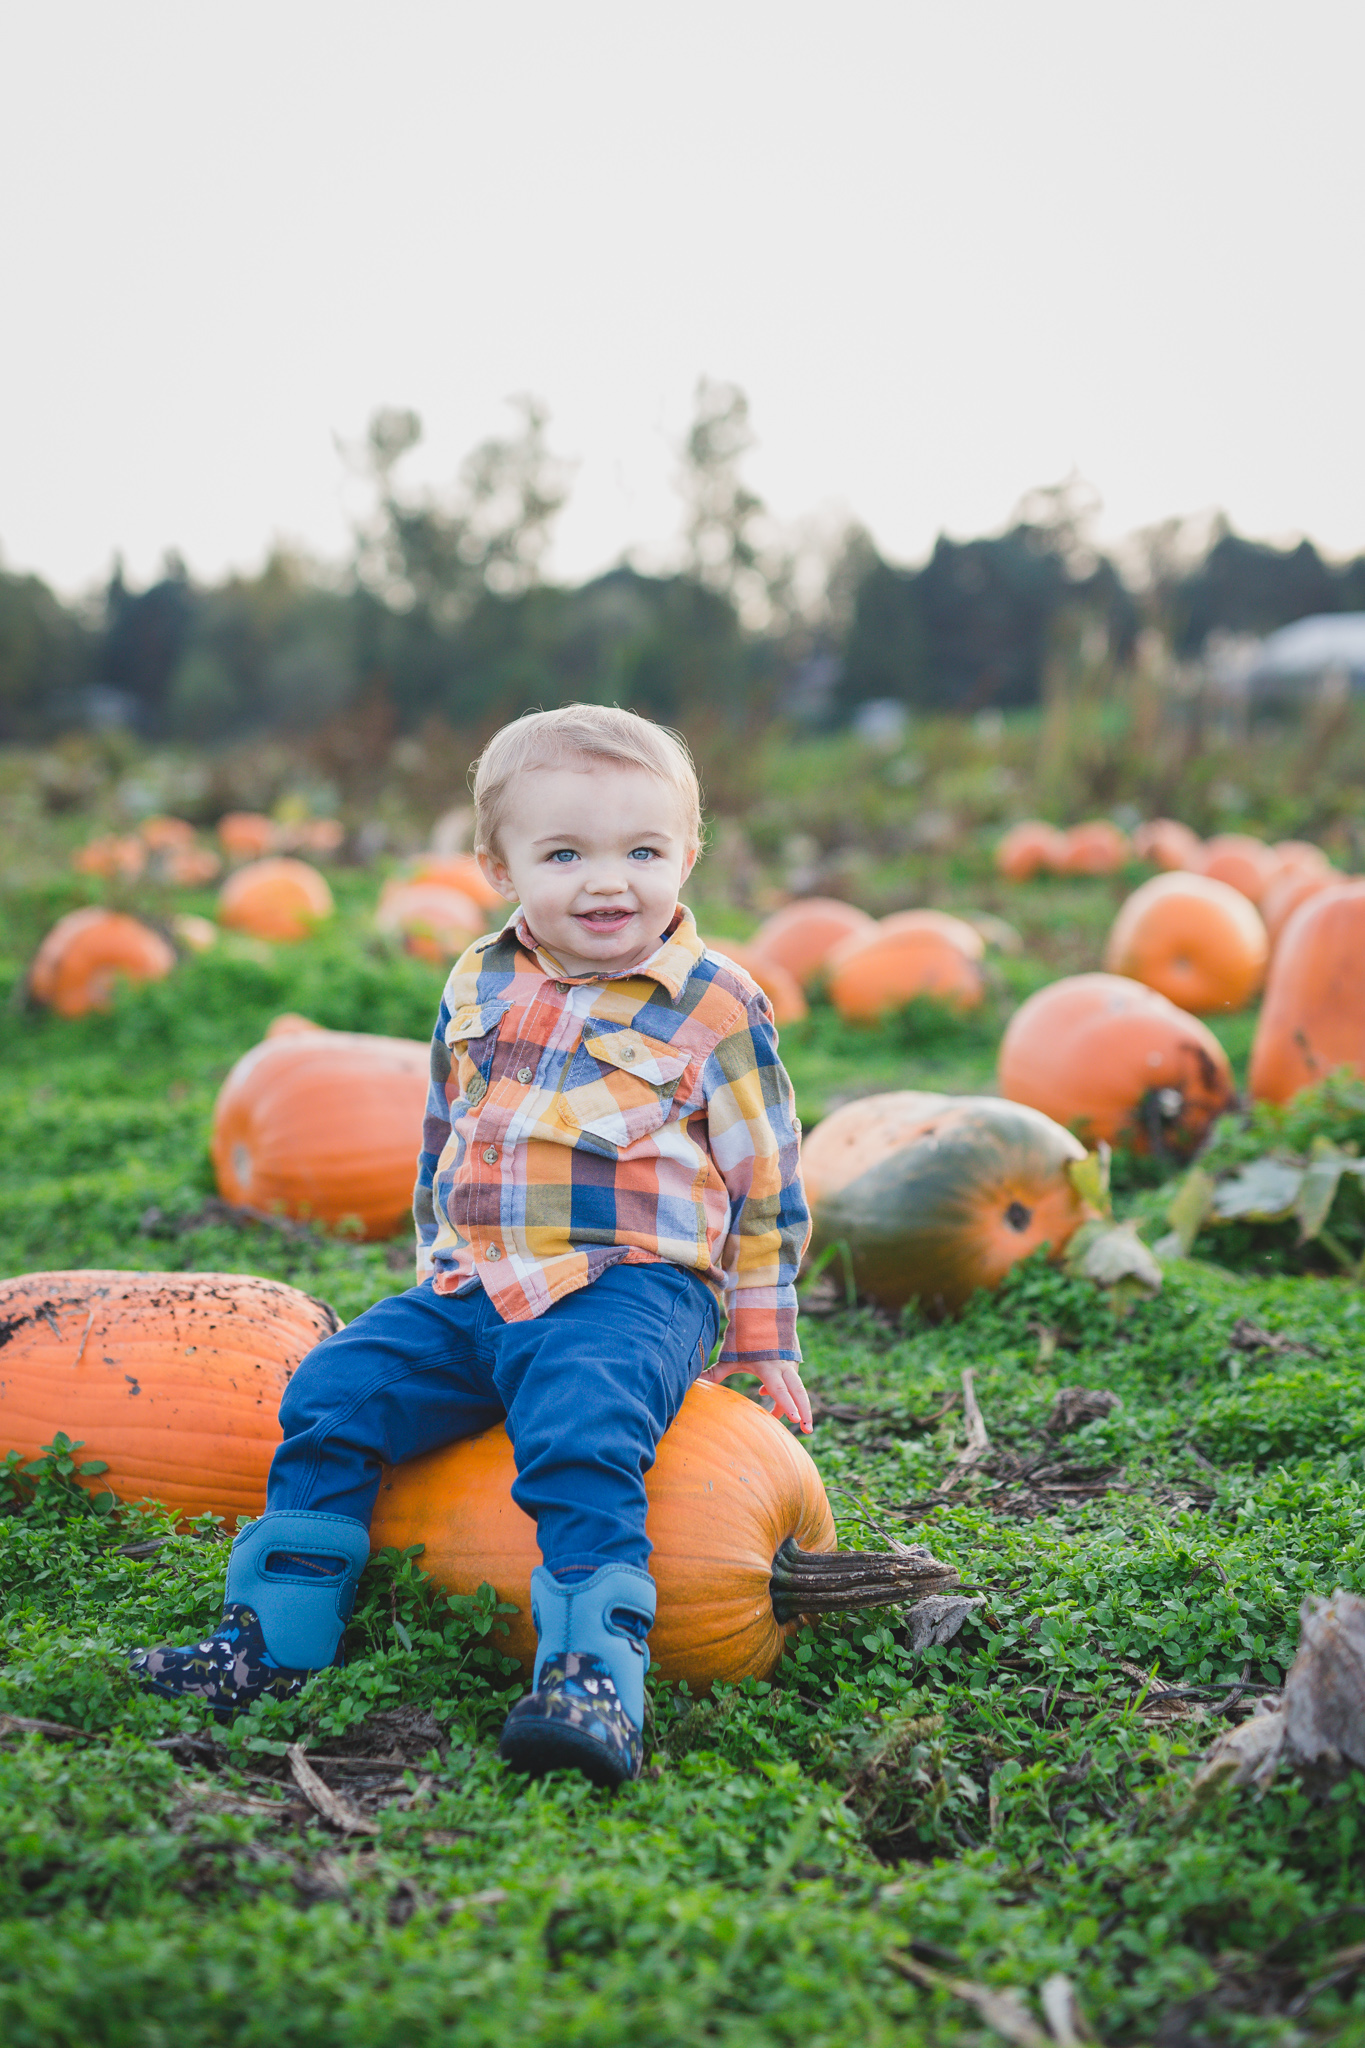 pumpkin patch baby photo, rondriso farms, family photographer, fraser valley, wink photography, fall mini session, cloverdale photographer, family photographer